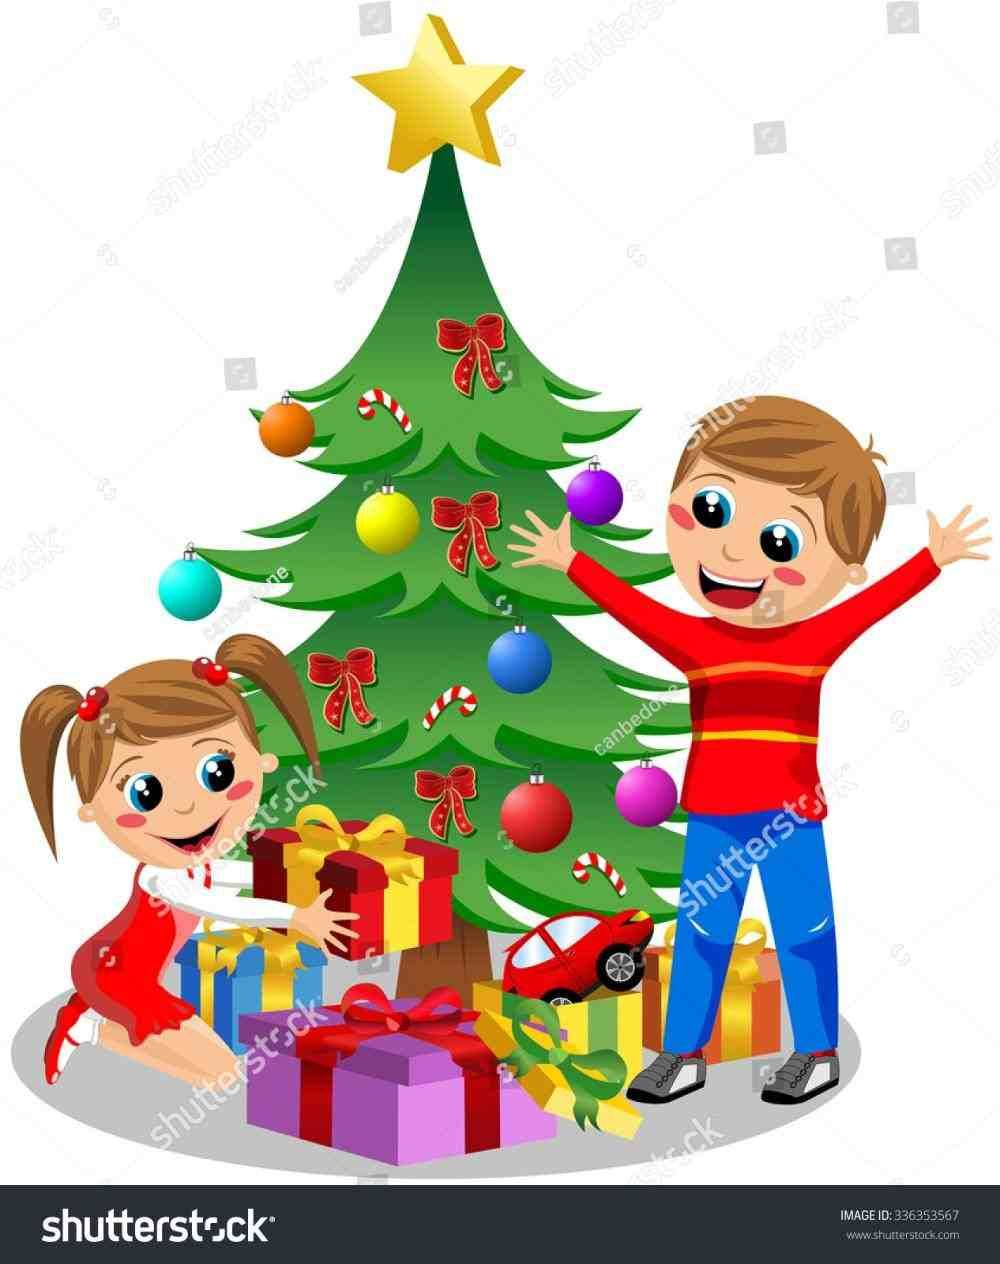 Christmas Gift Wallpaper Cartoon Here you can explore hq cartoon tree transparent illustrations, icons and clipart with filter setting like size, type, color etc. christmas gift wallpaper cartoon